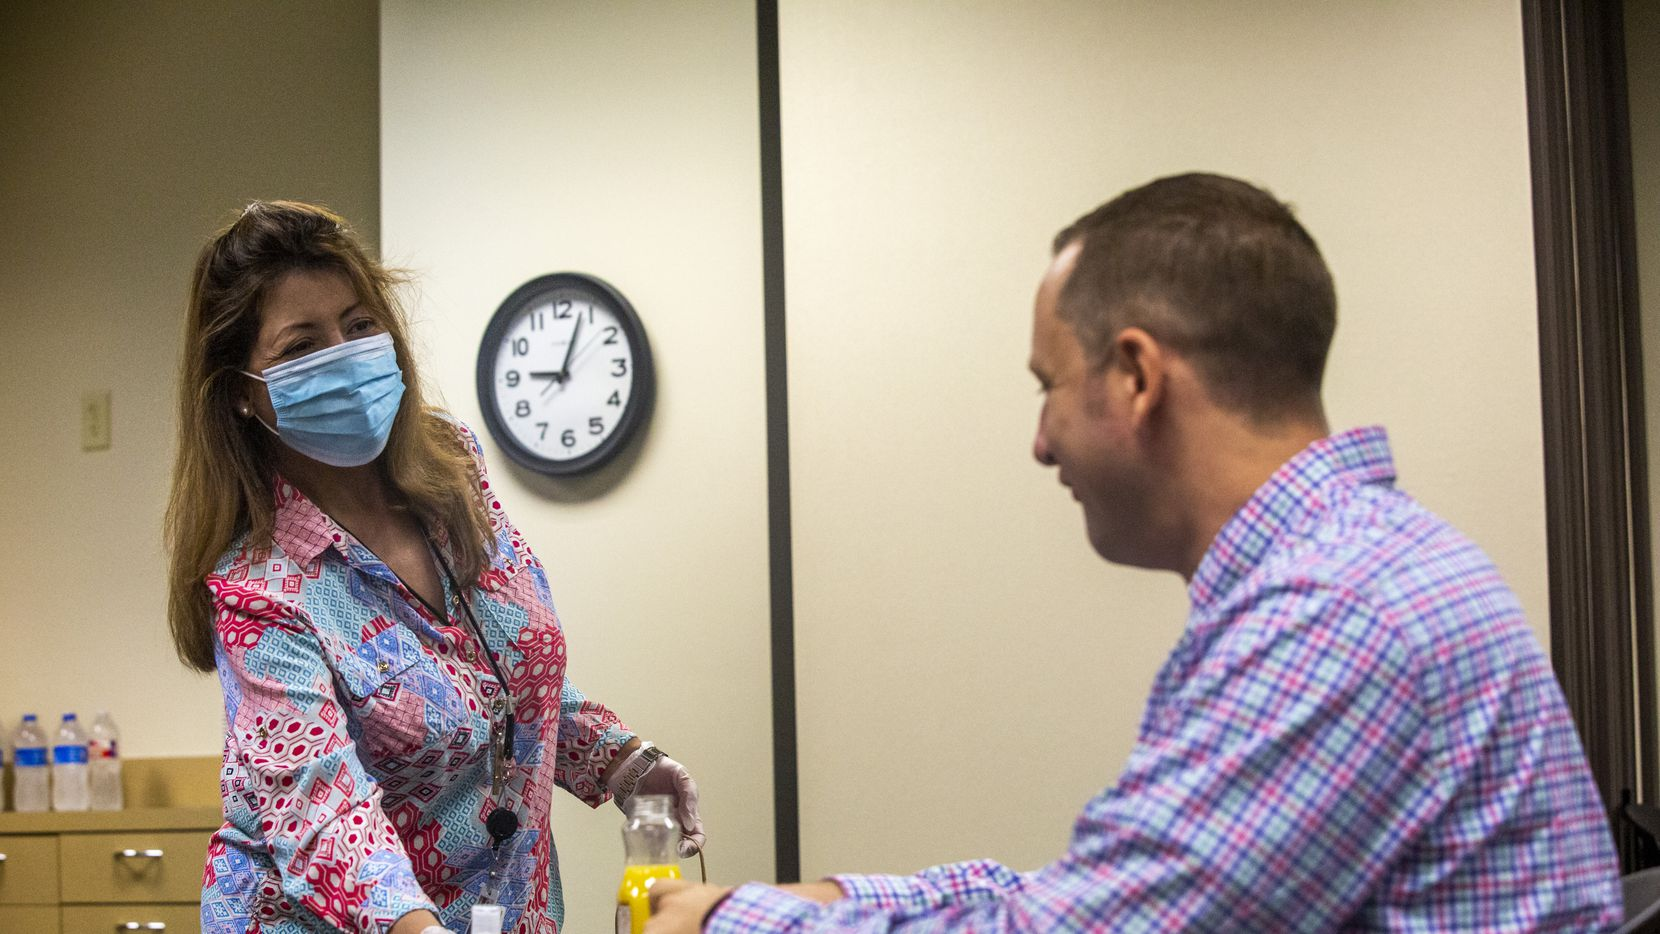 Administrative Assistant Robbie Marquez (left) hands a hand sanitizer bottle to new hire and Quality Assurance Analyst Daniel Stirrat during a meet-and-greet breakfast with new company hires at the VPay Inc. office in Plano on Aug. 31, 2020. (Lynda M. González/The Dallas Morning News)